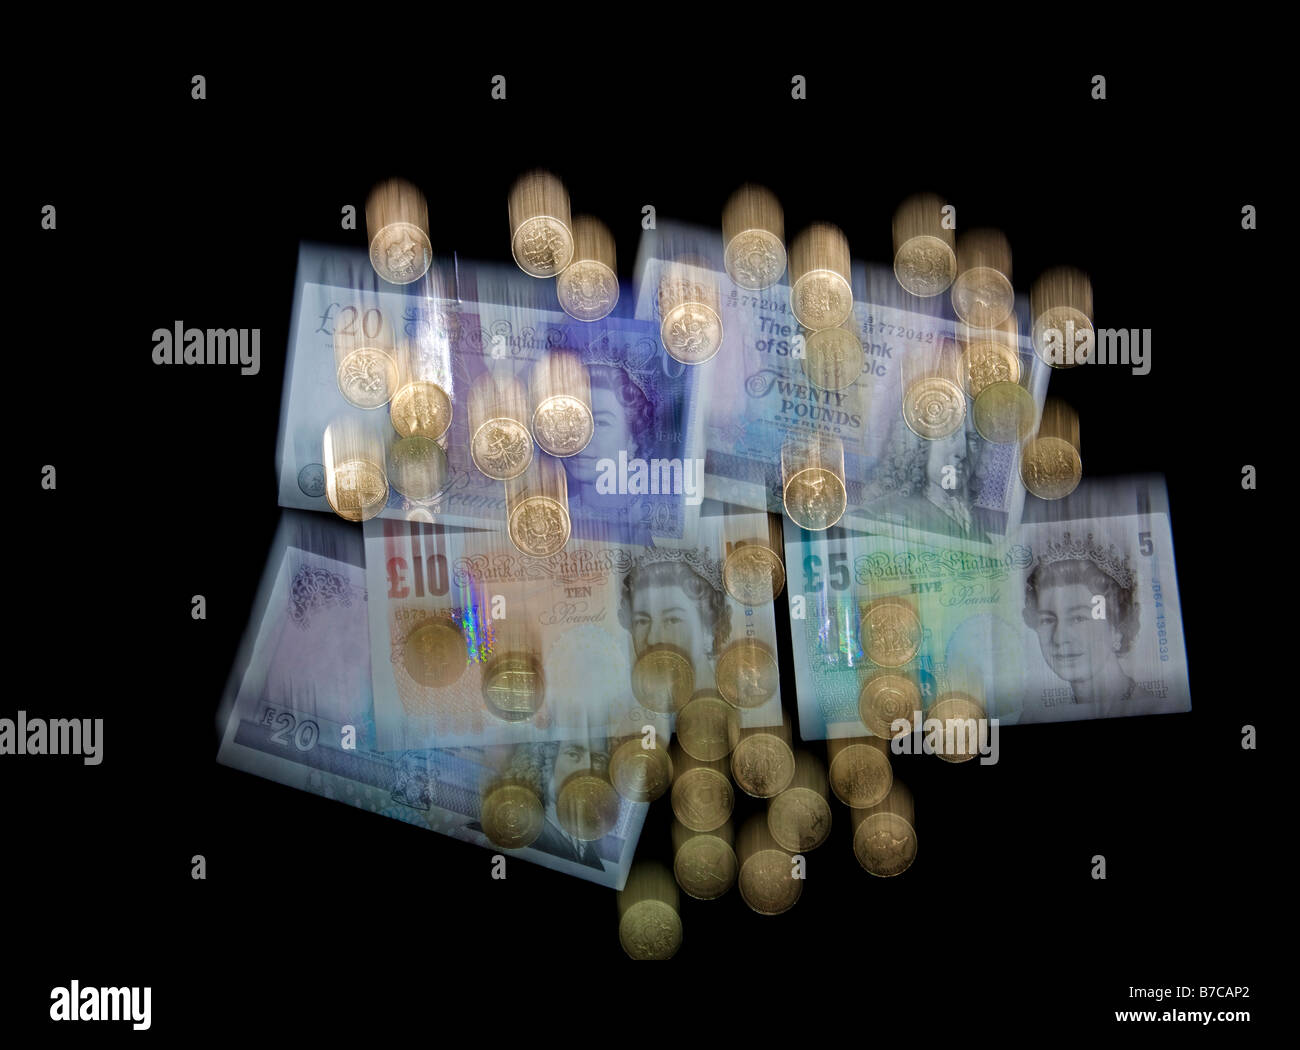 Falling blurred UK currency, banknotes and pound coins sterling to illustrate the falling pound Stock Photo